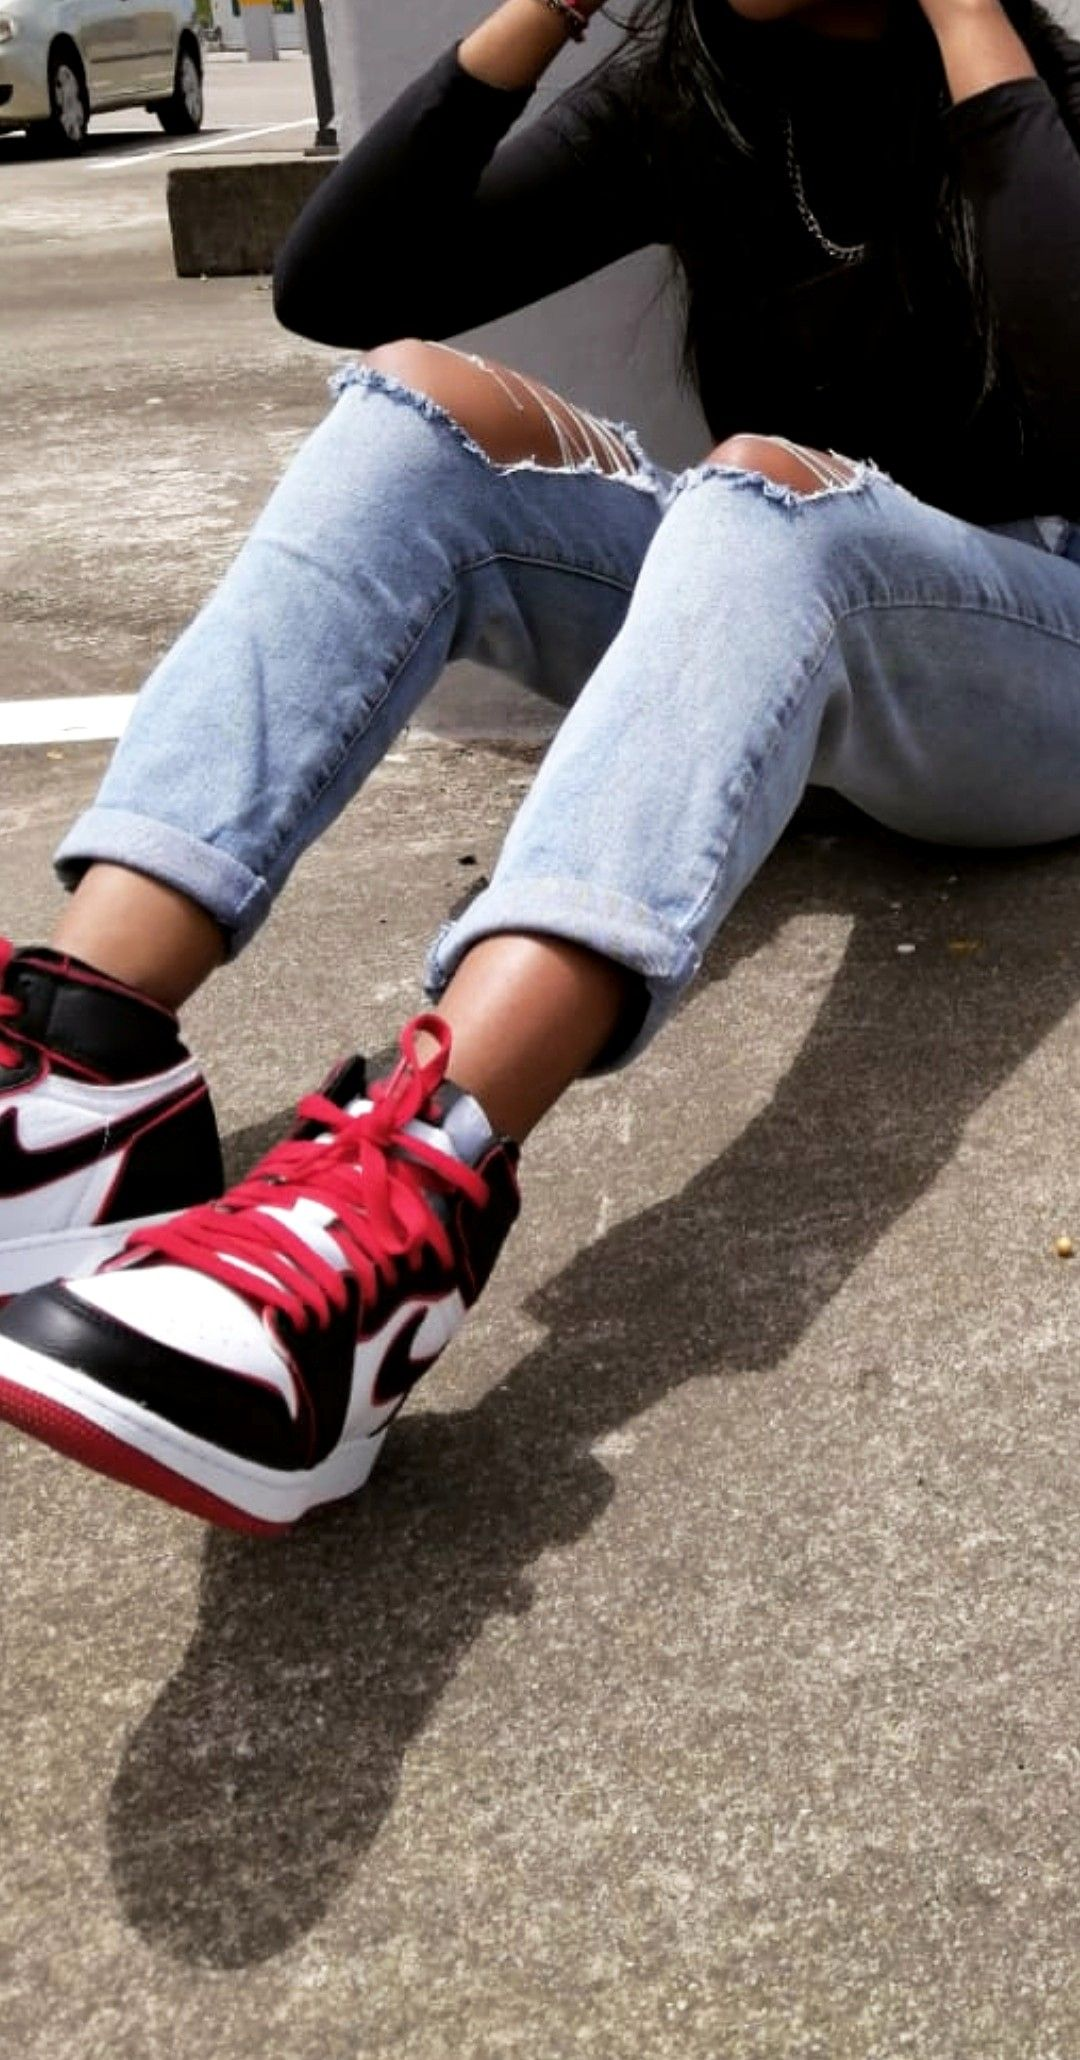 air jordan 1 retro high OG - bloodline in 2020 | Jordan ...